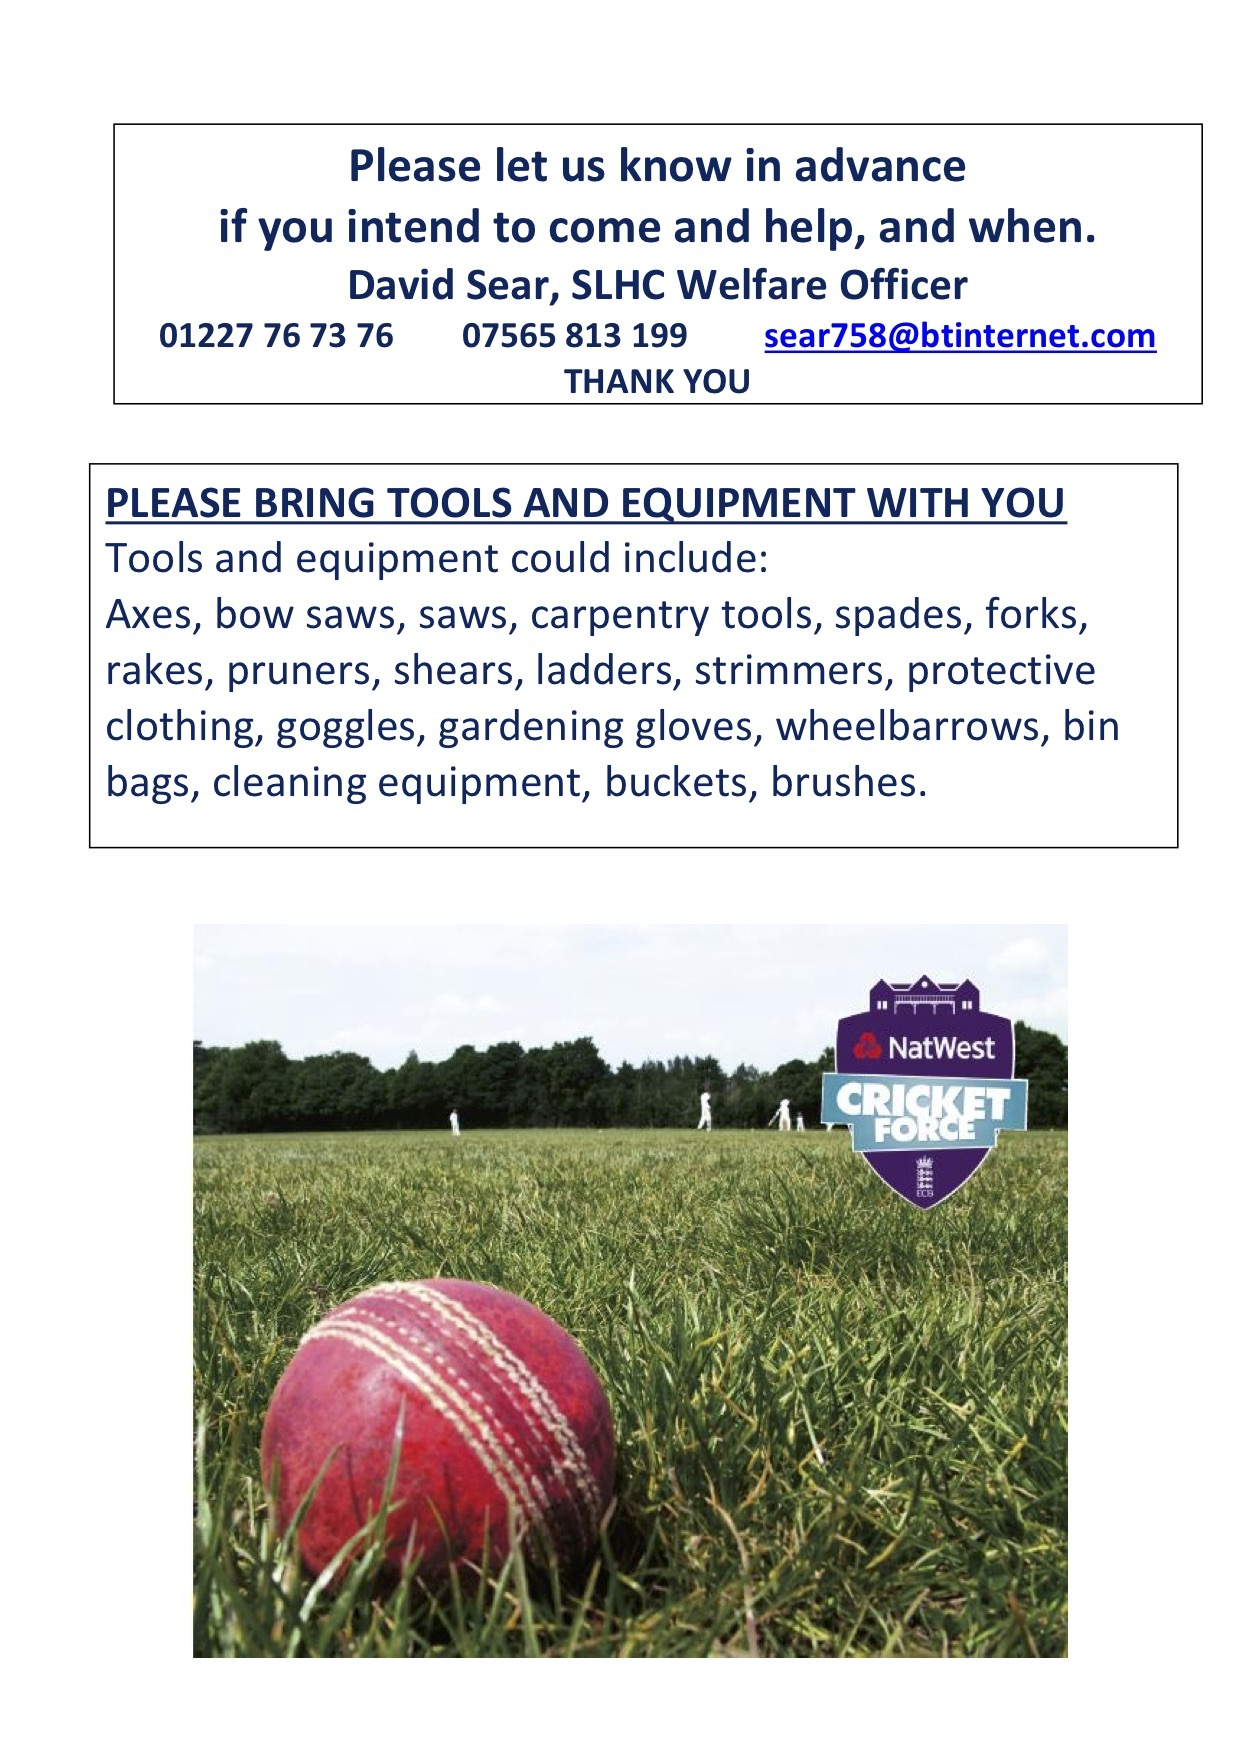 Priority_Tasks_for_Cricketforce_2018_page_3